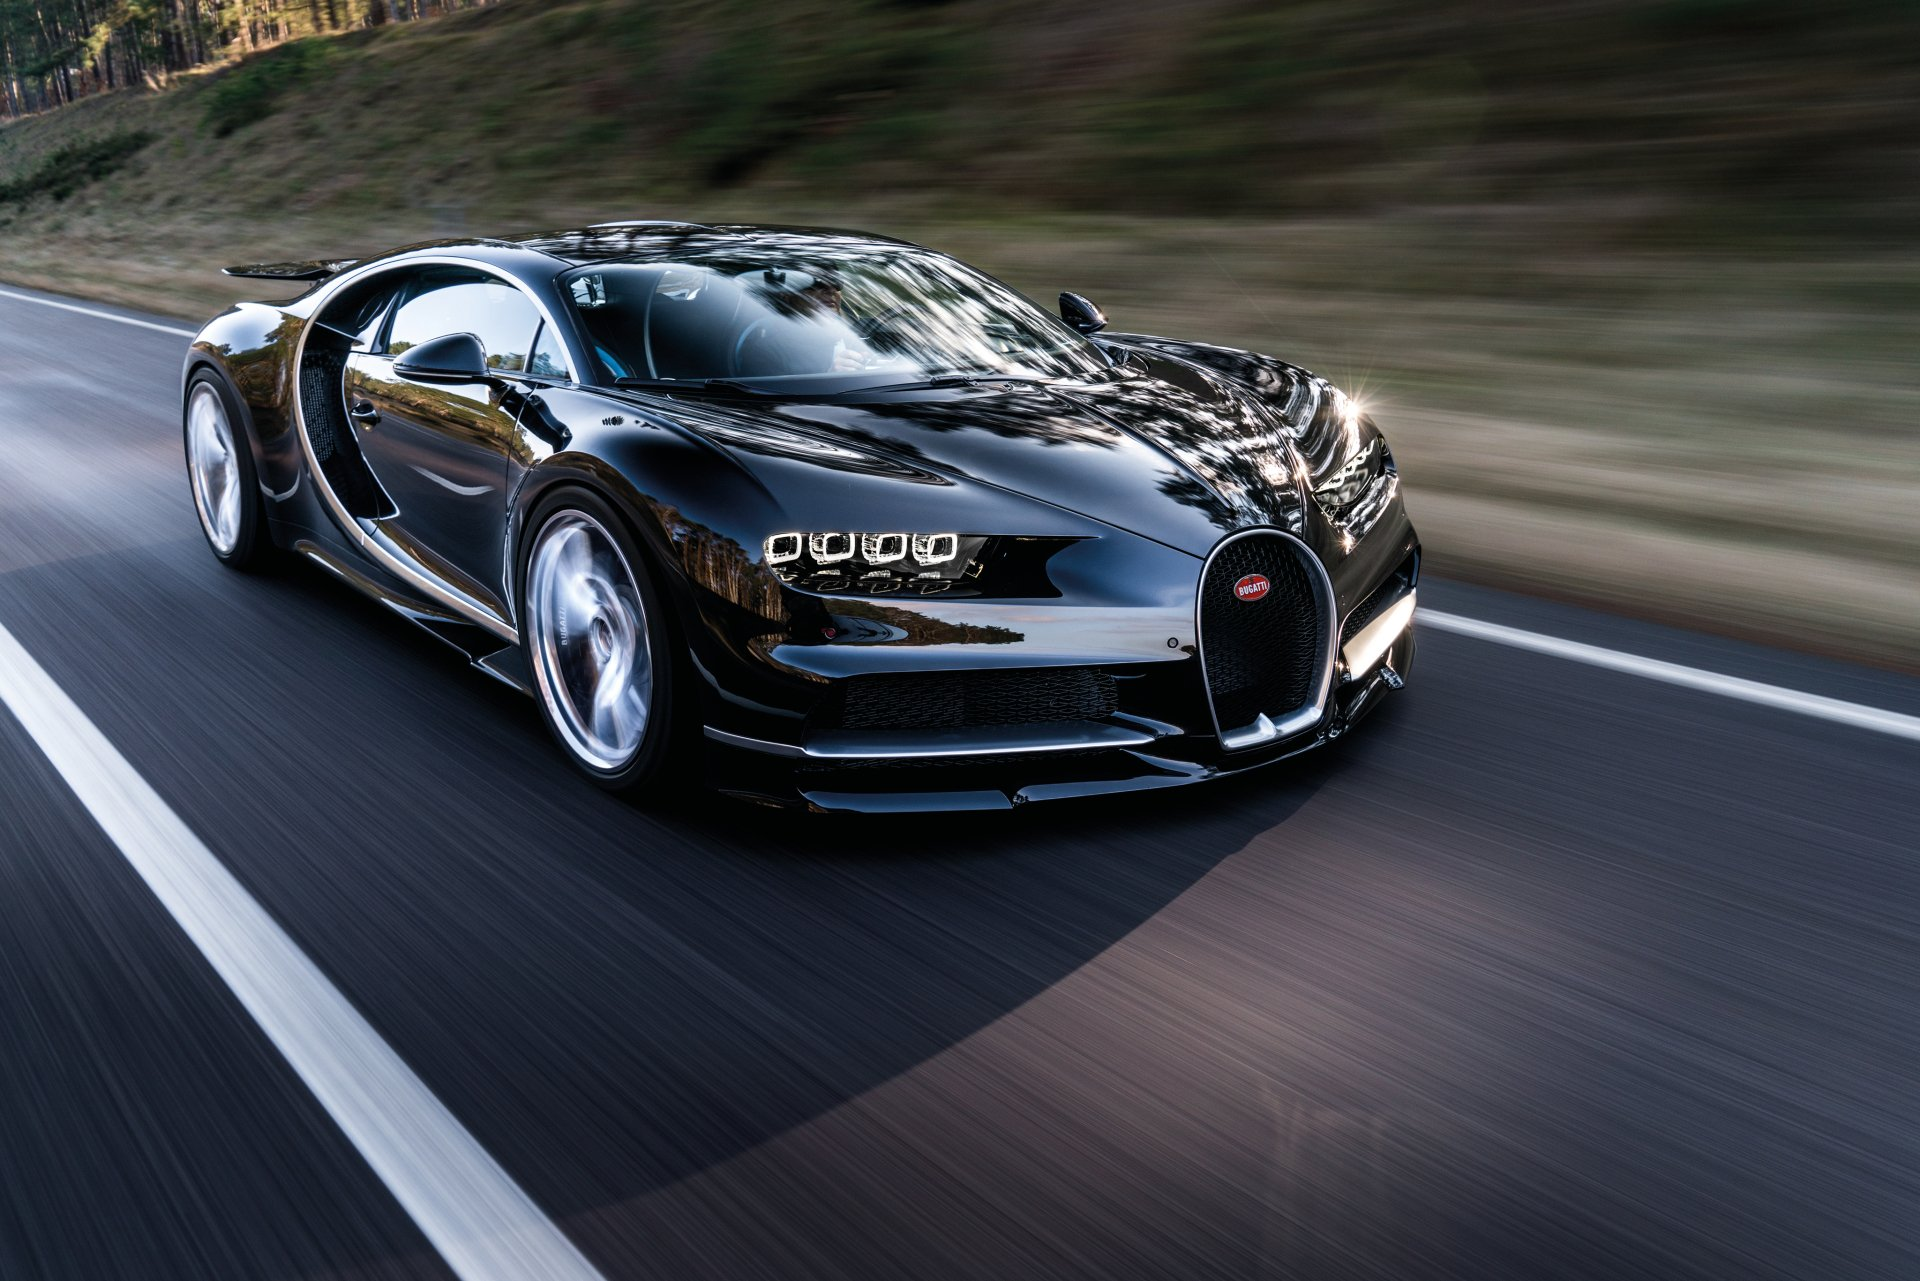 51 Bugatti Chiron Hd Wallpapers Background Images Wallpaper Abyss